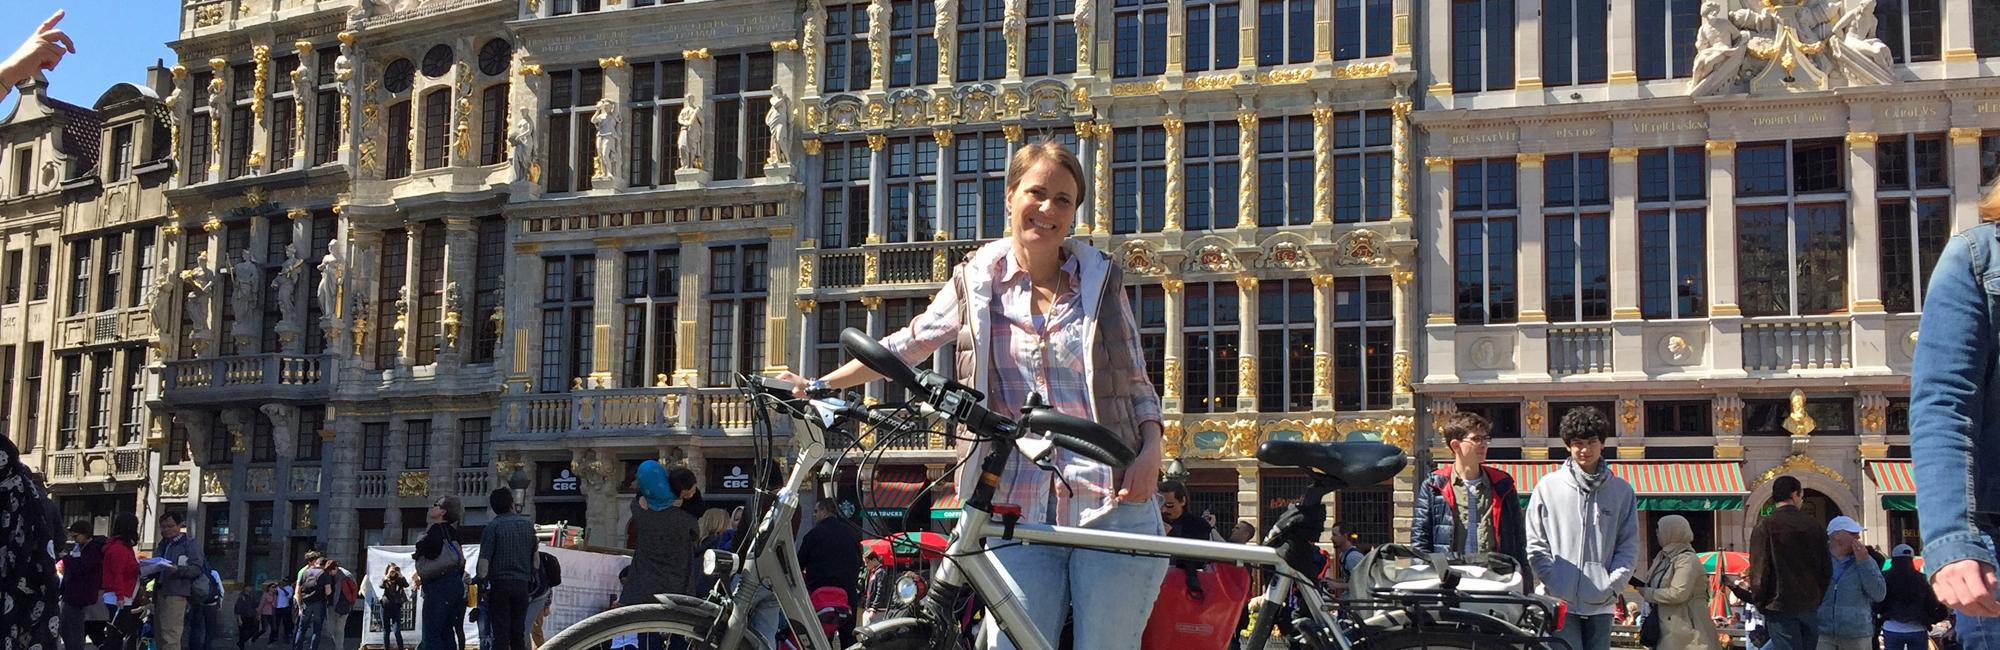 Dutch Bike Tours Radreisen  Amsterdam - Brussels